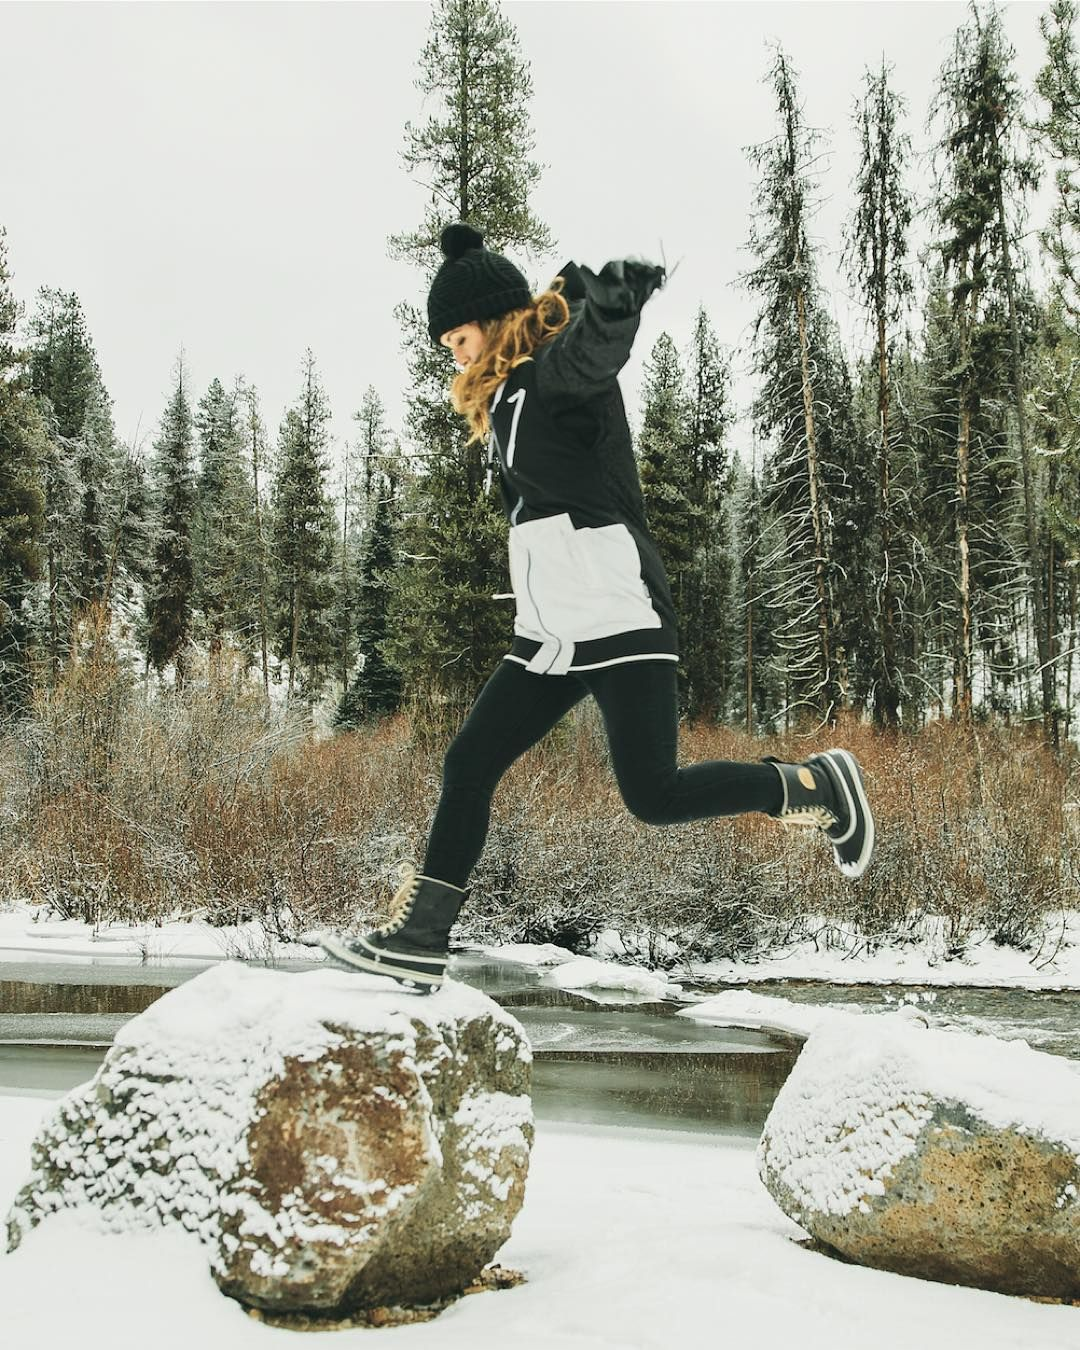 「Way to make us excited for snow days, @kylieturley. ❄️ @sorelfootwear #SORELstyle #UOonYou」